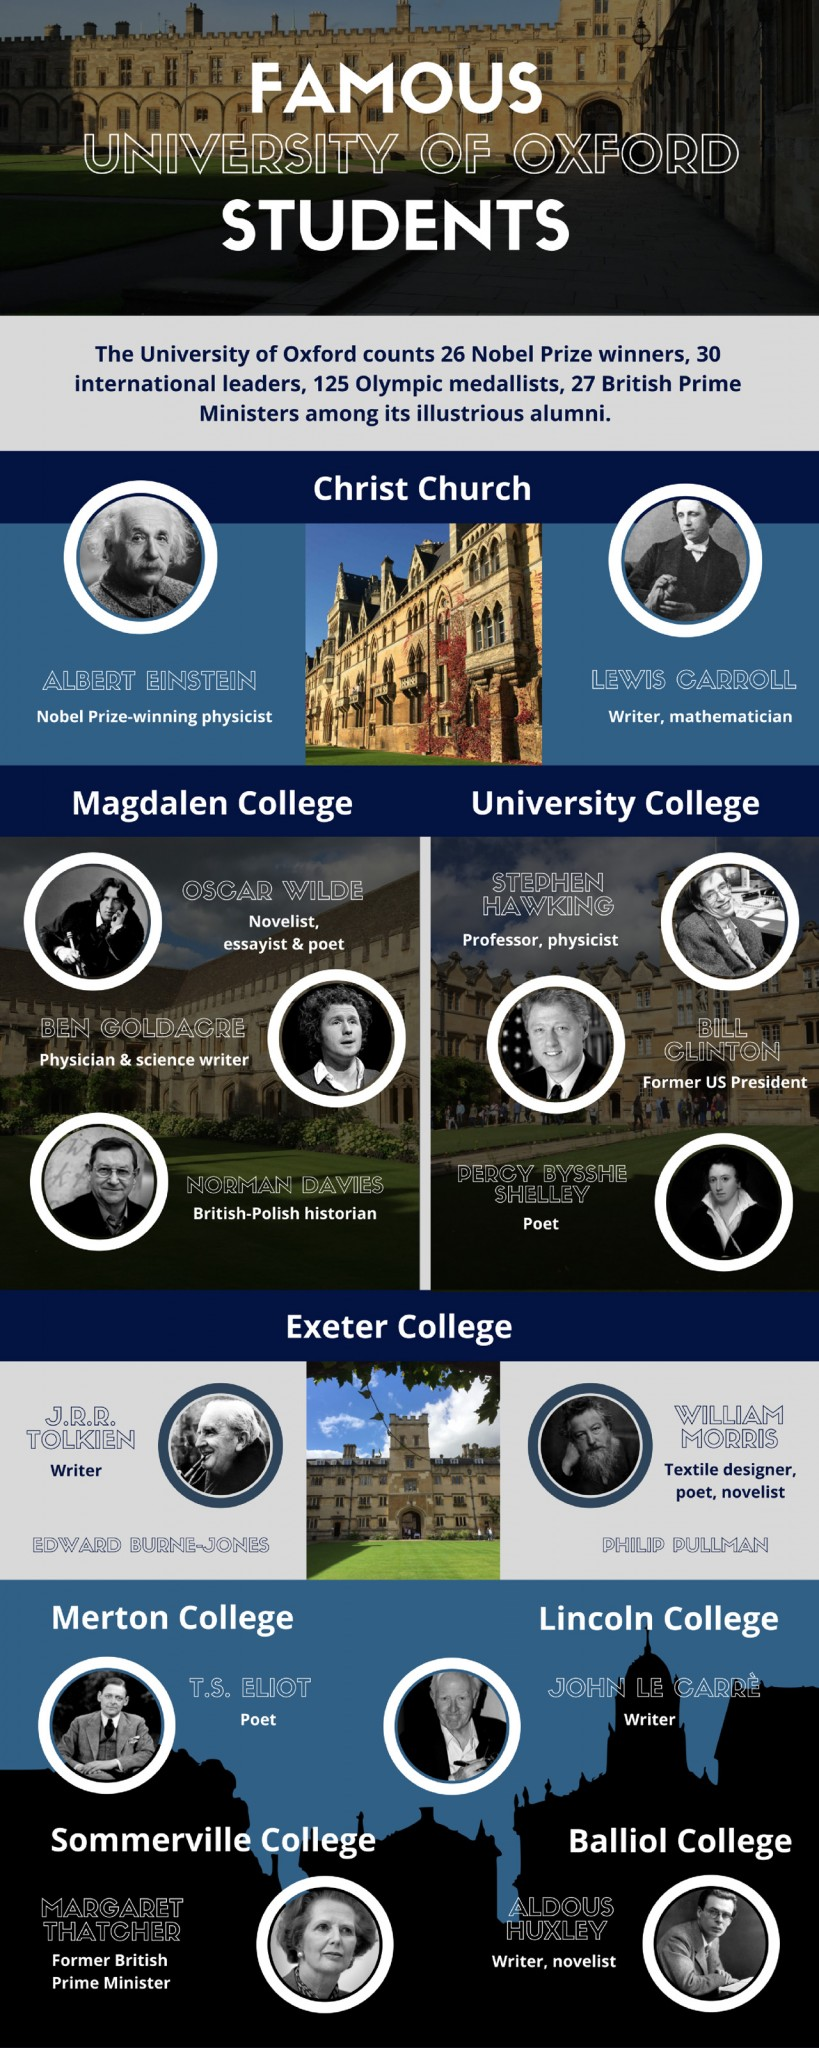 The most successful and famous oxford university students